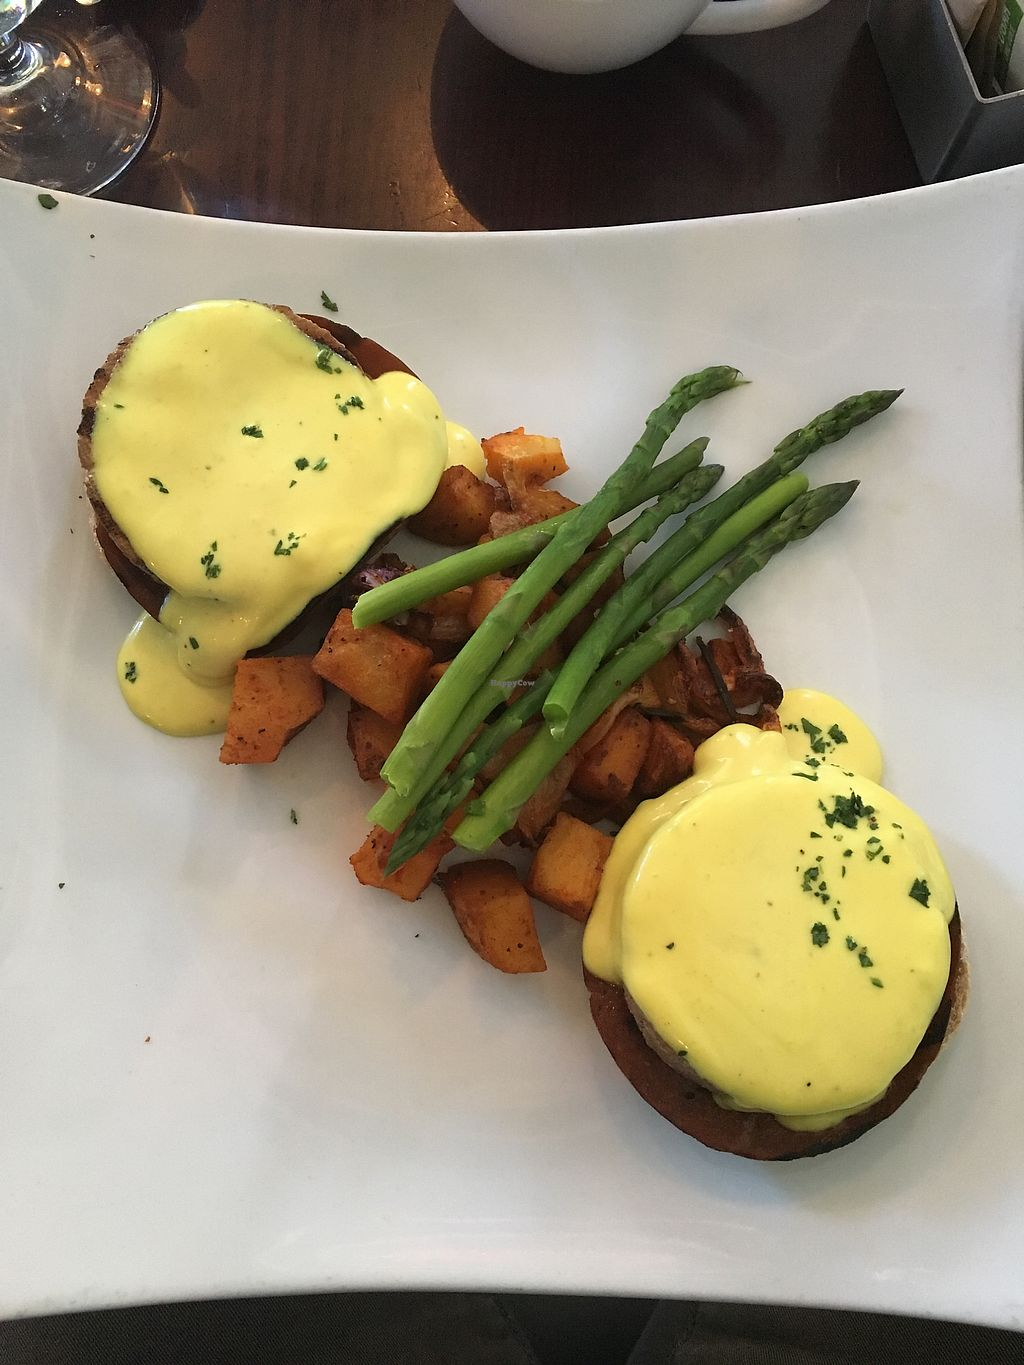 """Photo of Blossom Restaurant  by <a href=""""/members/profile/770veg"""">770veg</a> <br/>blossom Benedict  <br/> November 17, 2017  - <a href='/contact/abuse/image/6097/326507'>Report</a>"""